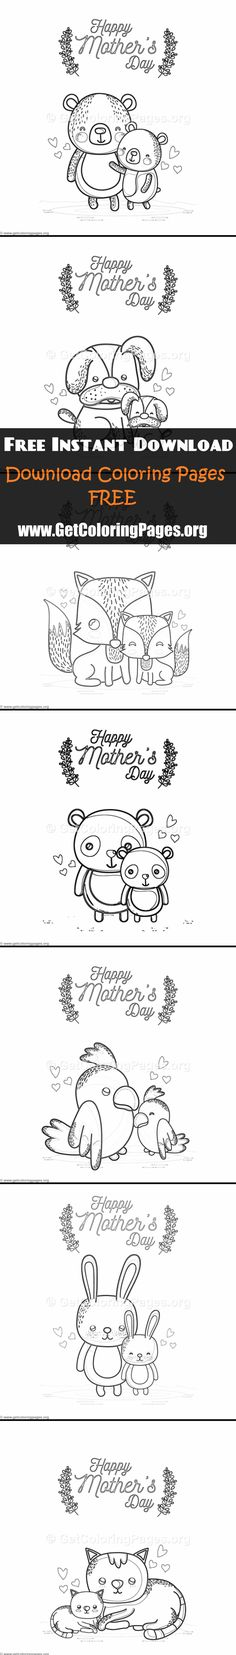 34 Best MOTHERS DAY COLORING PAGES Images On Pinterest